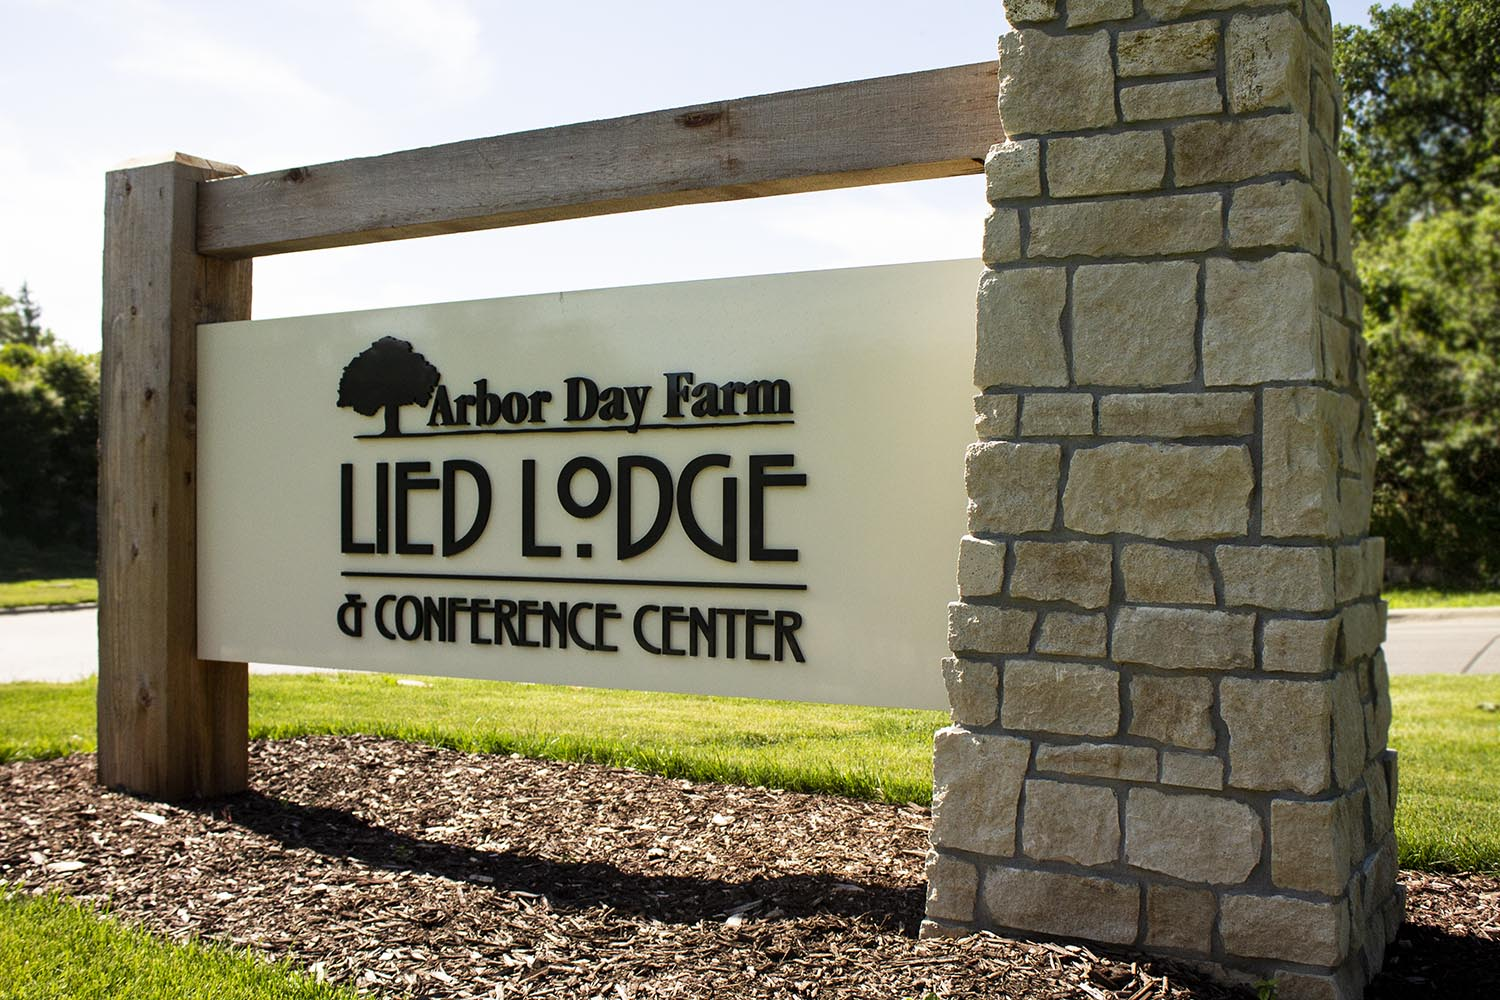 lied lodge sign.jpg